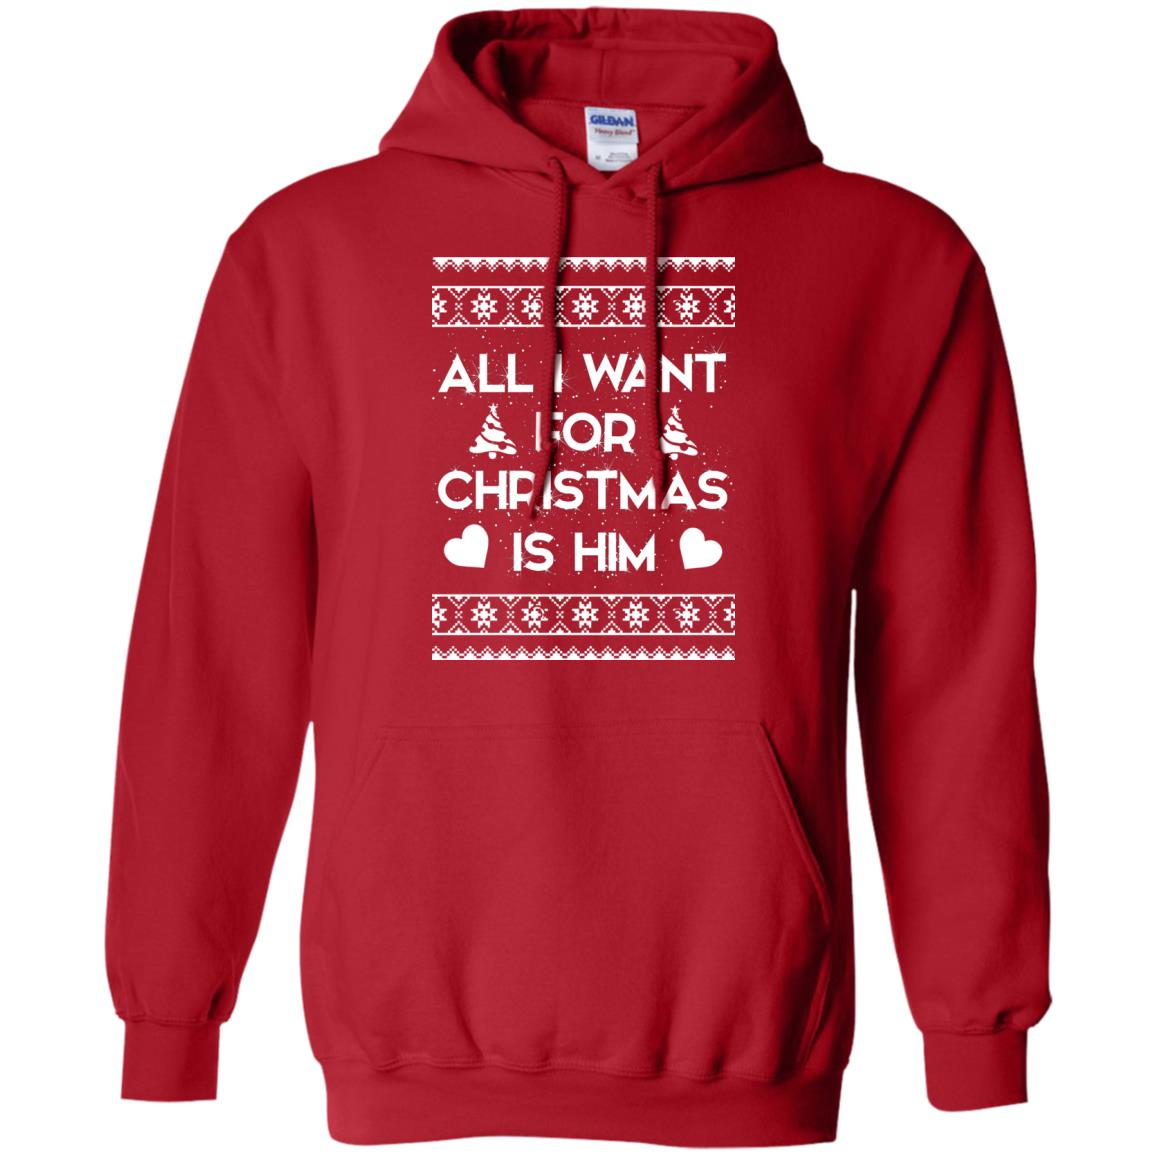 image 2376 - Couple Sweatshirt: All I Want For Christmas Is Him Ugly Sweater, Shirt